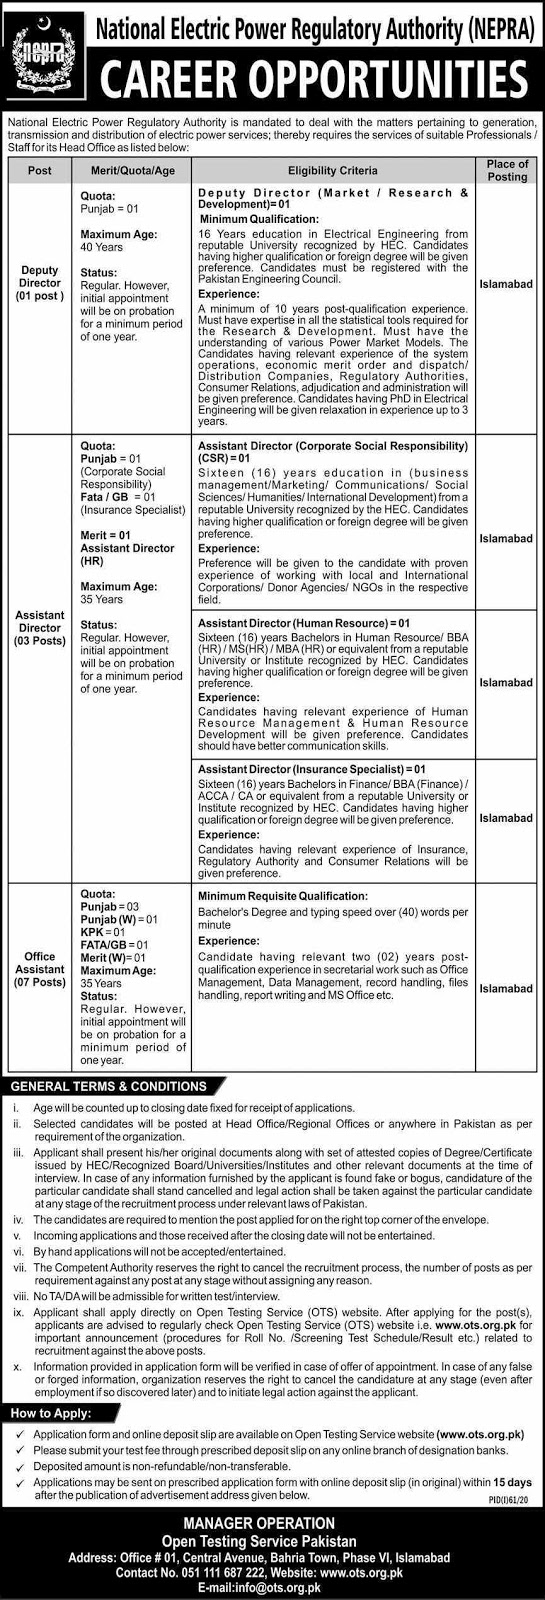 National Electric Power Regulatory Authority (NEPRA) Jobs 2020 For Office Assistant, Assistant Director and more